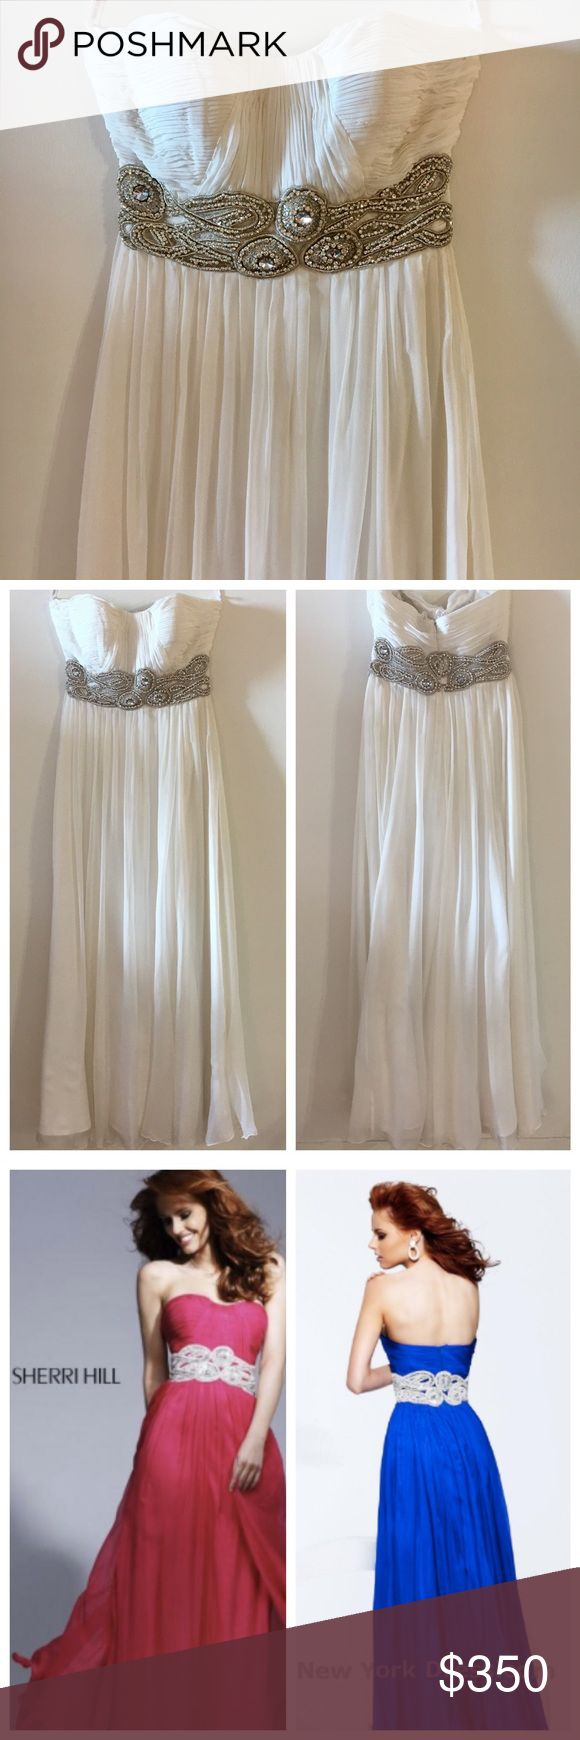 The dress is white - Nwt Sherri Hill White Gown Wedding Dress Prom